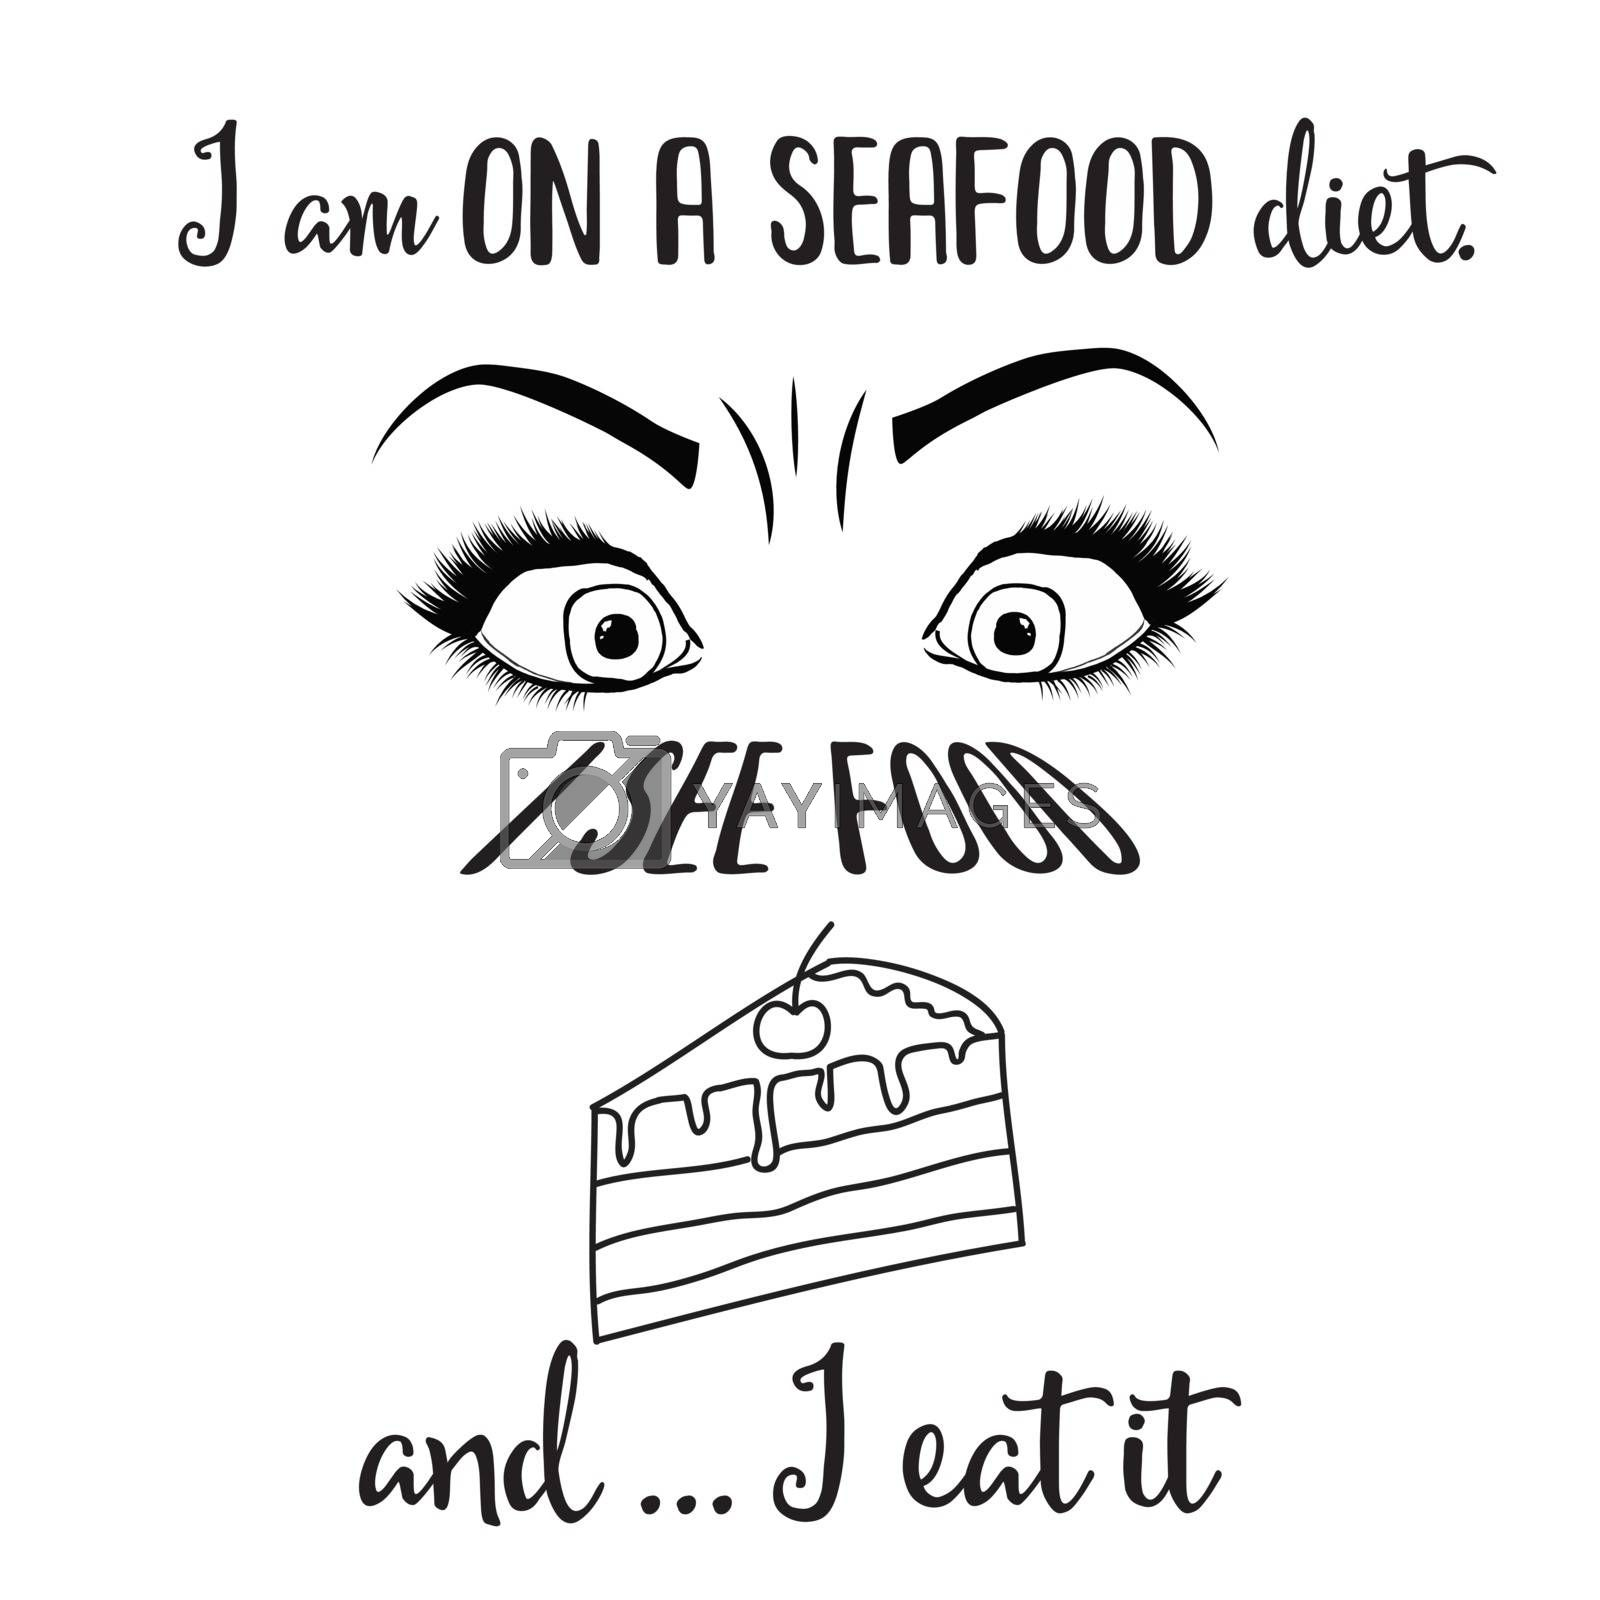 """"""" I am on a seafood diet. I see food and I eat it"""" Funny quote about diet"""